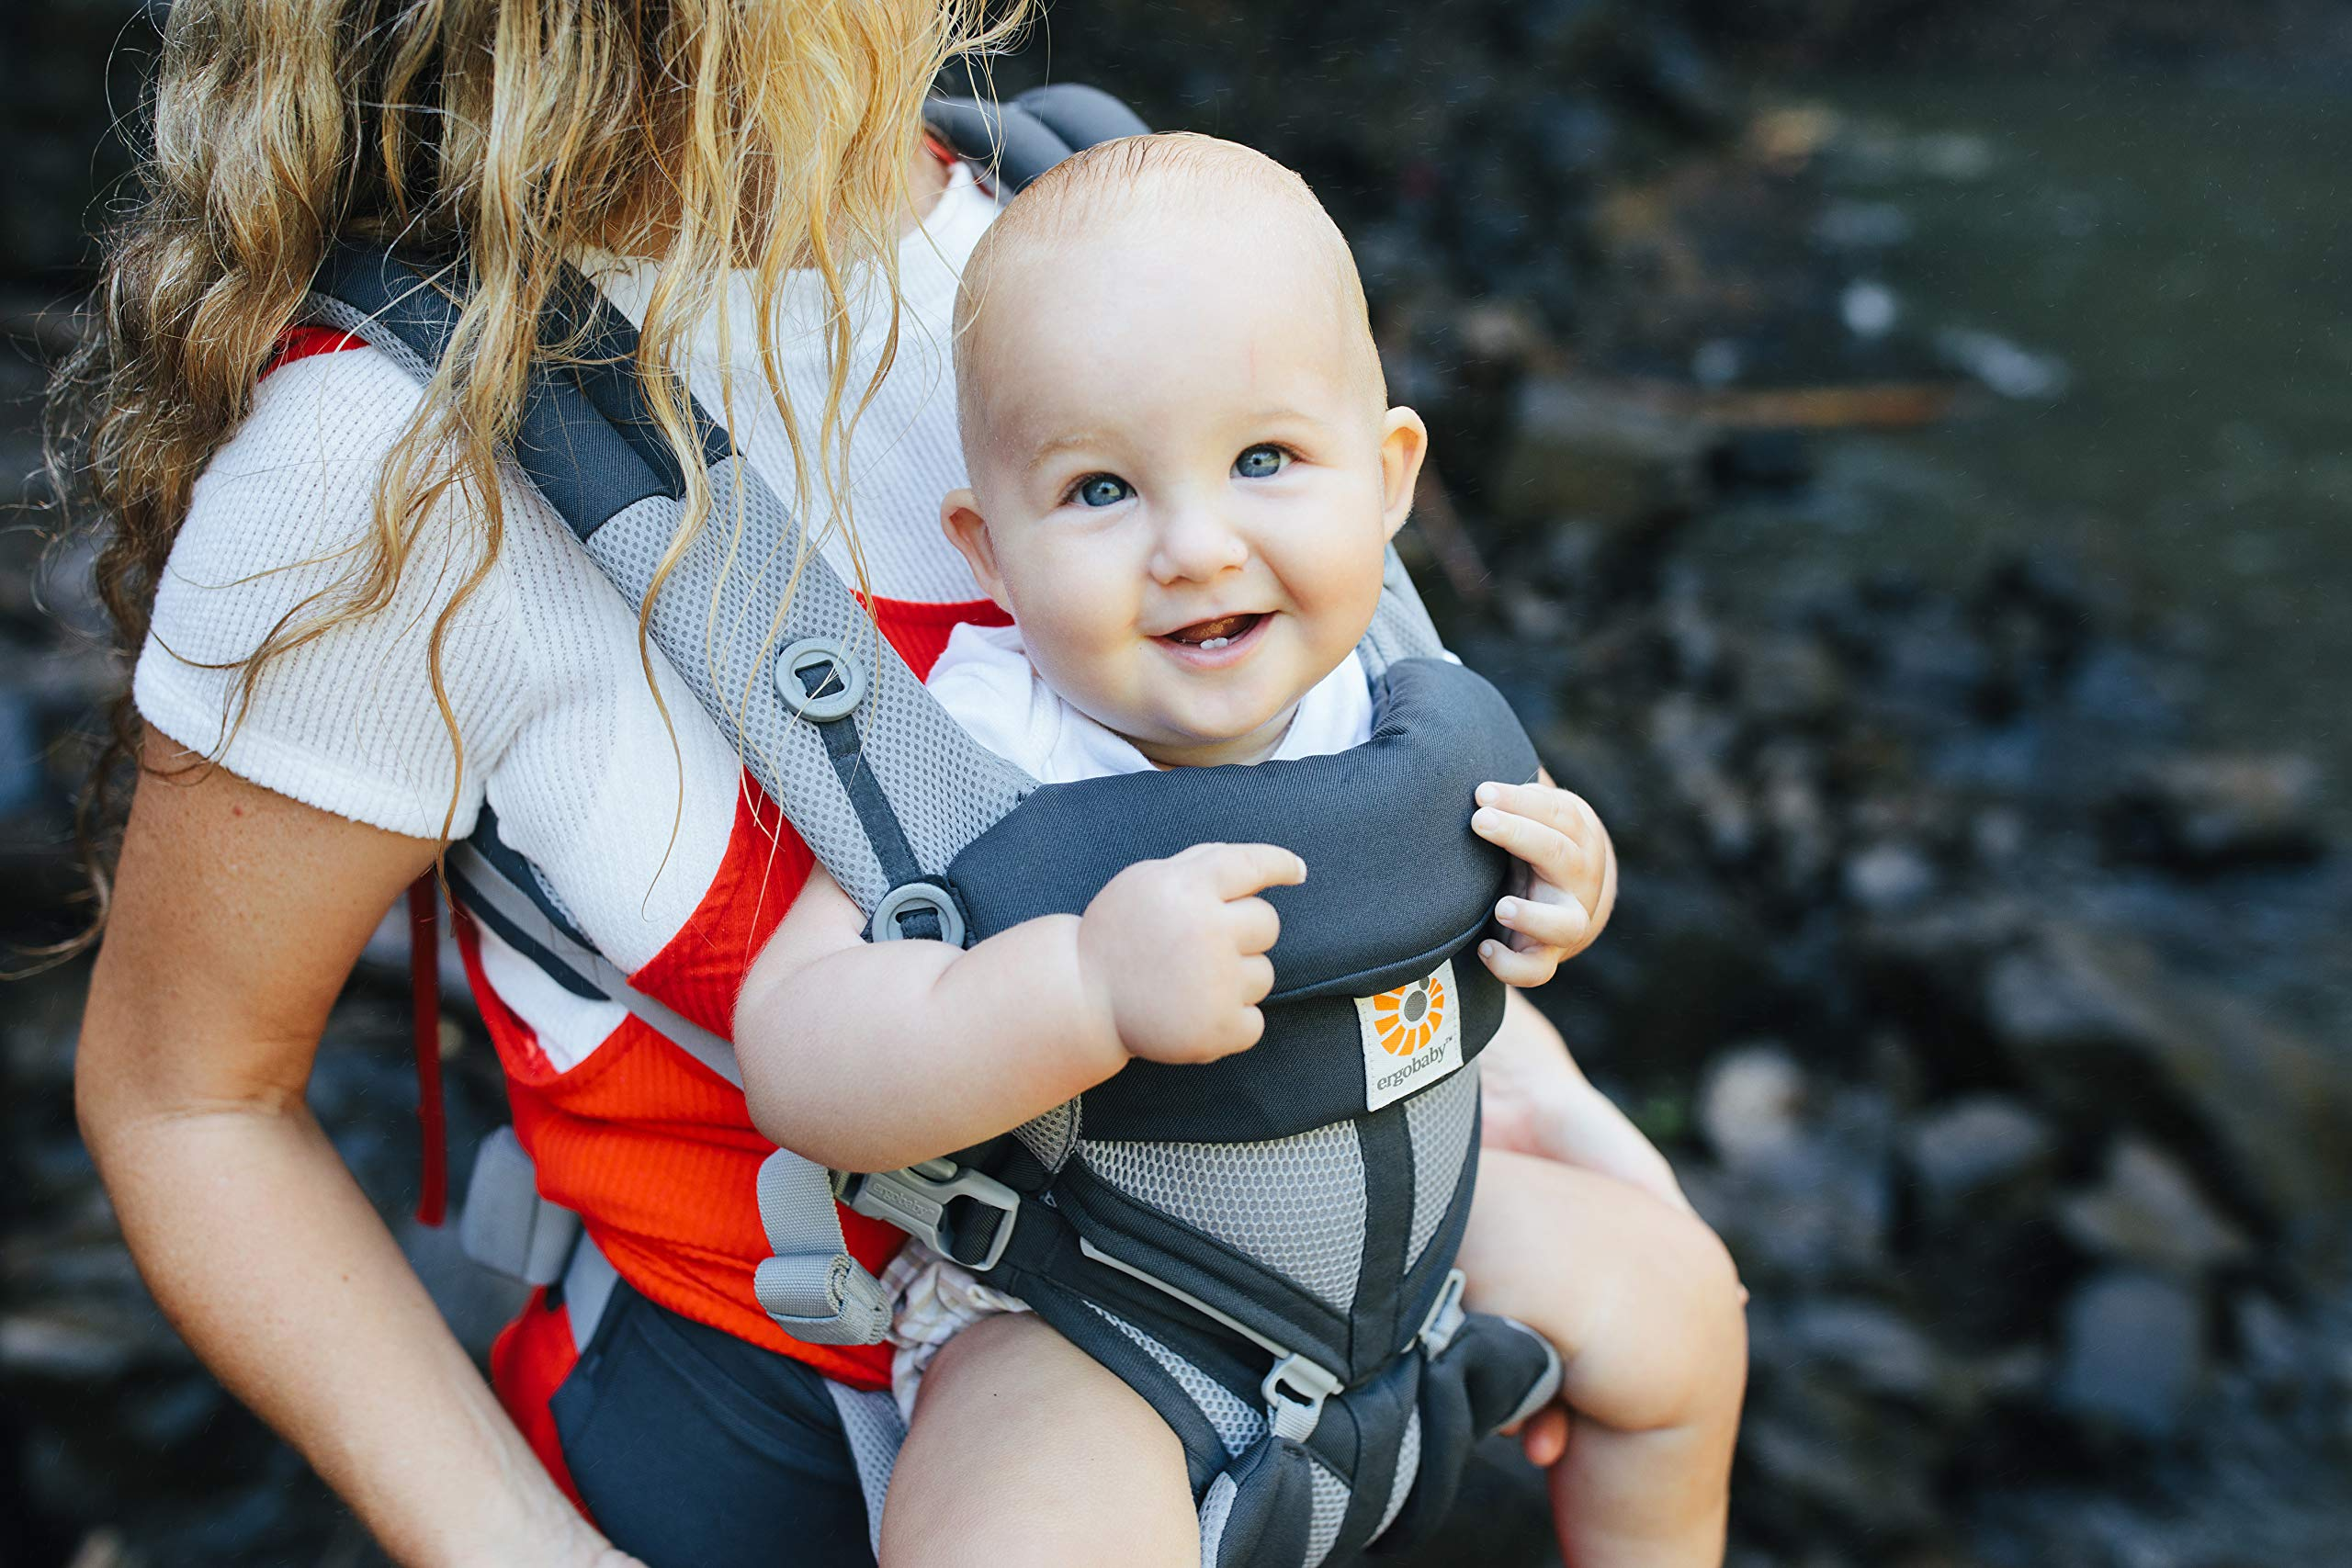 Ergobaby Baby Carrier for Newborn to Toddler, 4-Position Omni 360 Cool Air Carbon Grey, Breathable Ergonomic Child Carrier & Backpack Ergobaby BABY CARRIER FOR NEWBORN - Adapts to your growing baby from birth to toddler (7-45lbs). 4 carry positions: front-inward, back, hip, and front-outward. A Baby hood for sun protection (UPF 50+) & privacy for sleeping or breastfeeding is included. COMFORT - Exceptional lower back comfort with padded lumbar support waist belt & extra padded shoulder straps with the option to wear 2 ways: crossed or backpack style. Waist belt can be worn high or low to maximize comfort. COOL & BREATHABLE - Our Cool Air Mesh baby carriers are made with soft and durable mesh fabric that provides our renowned ergonomic support for baby while allowing for ultimate breathability and airflow 6